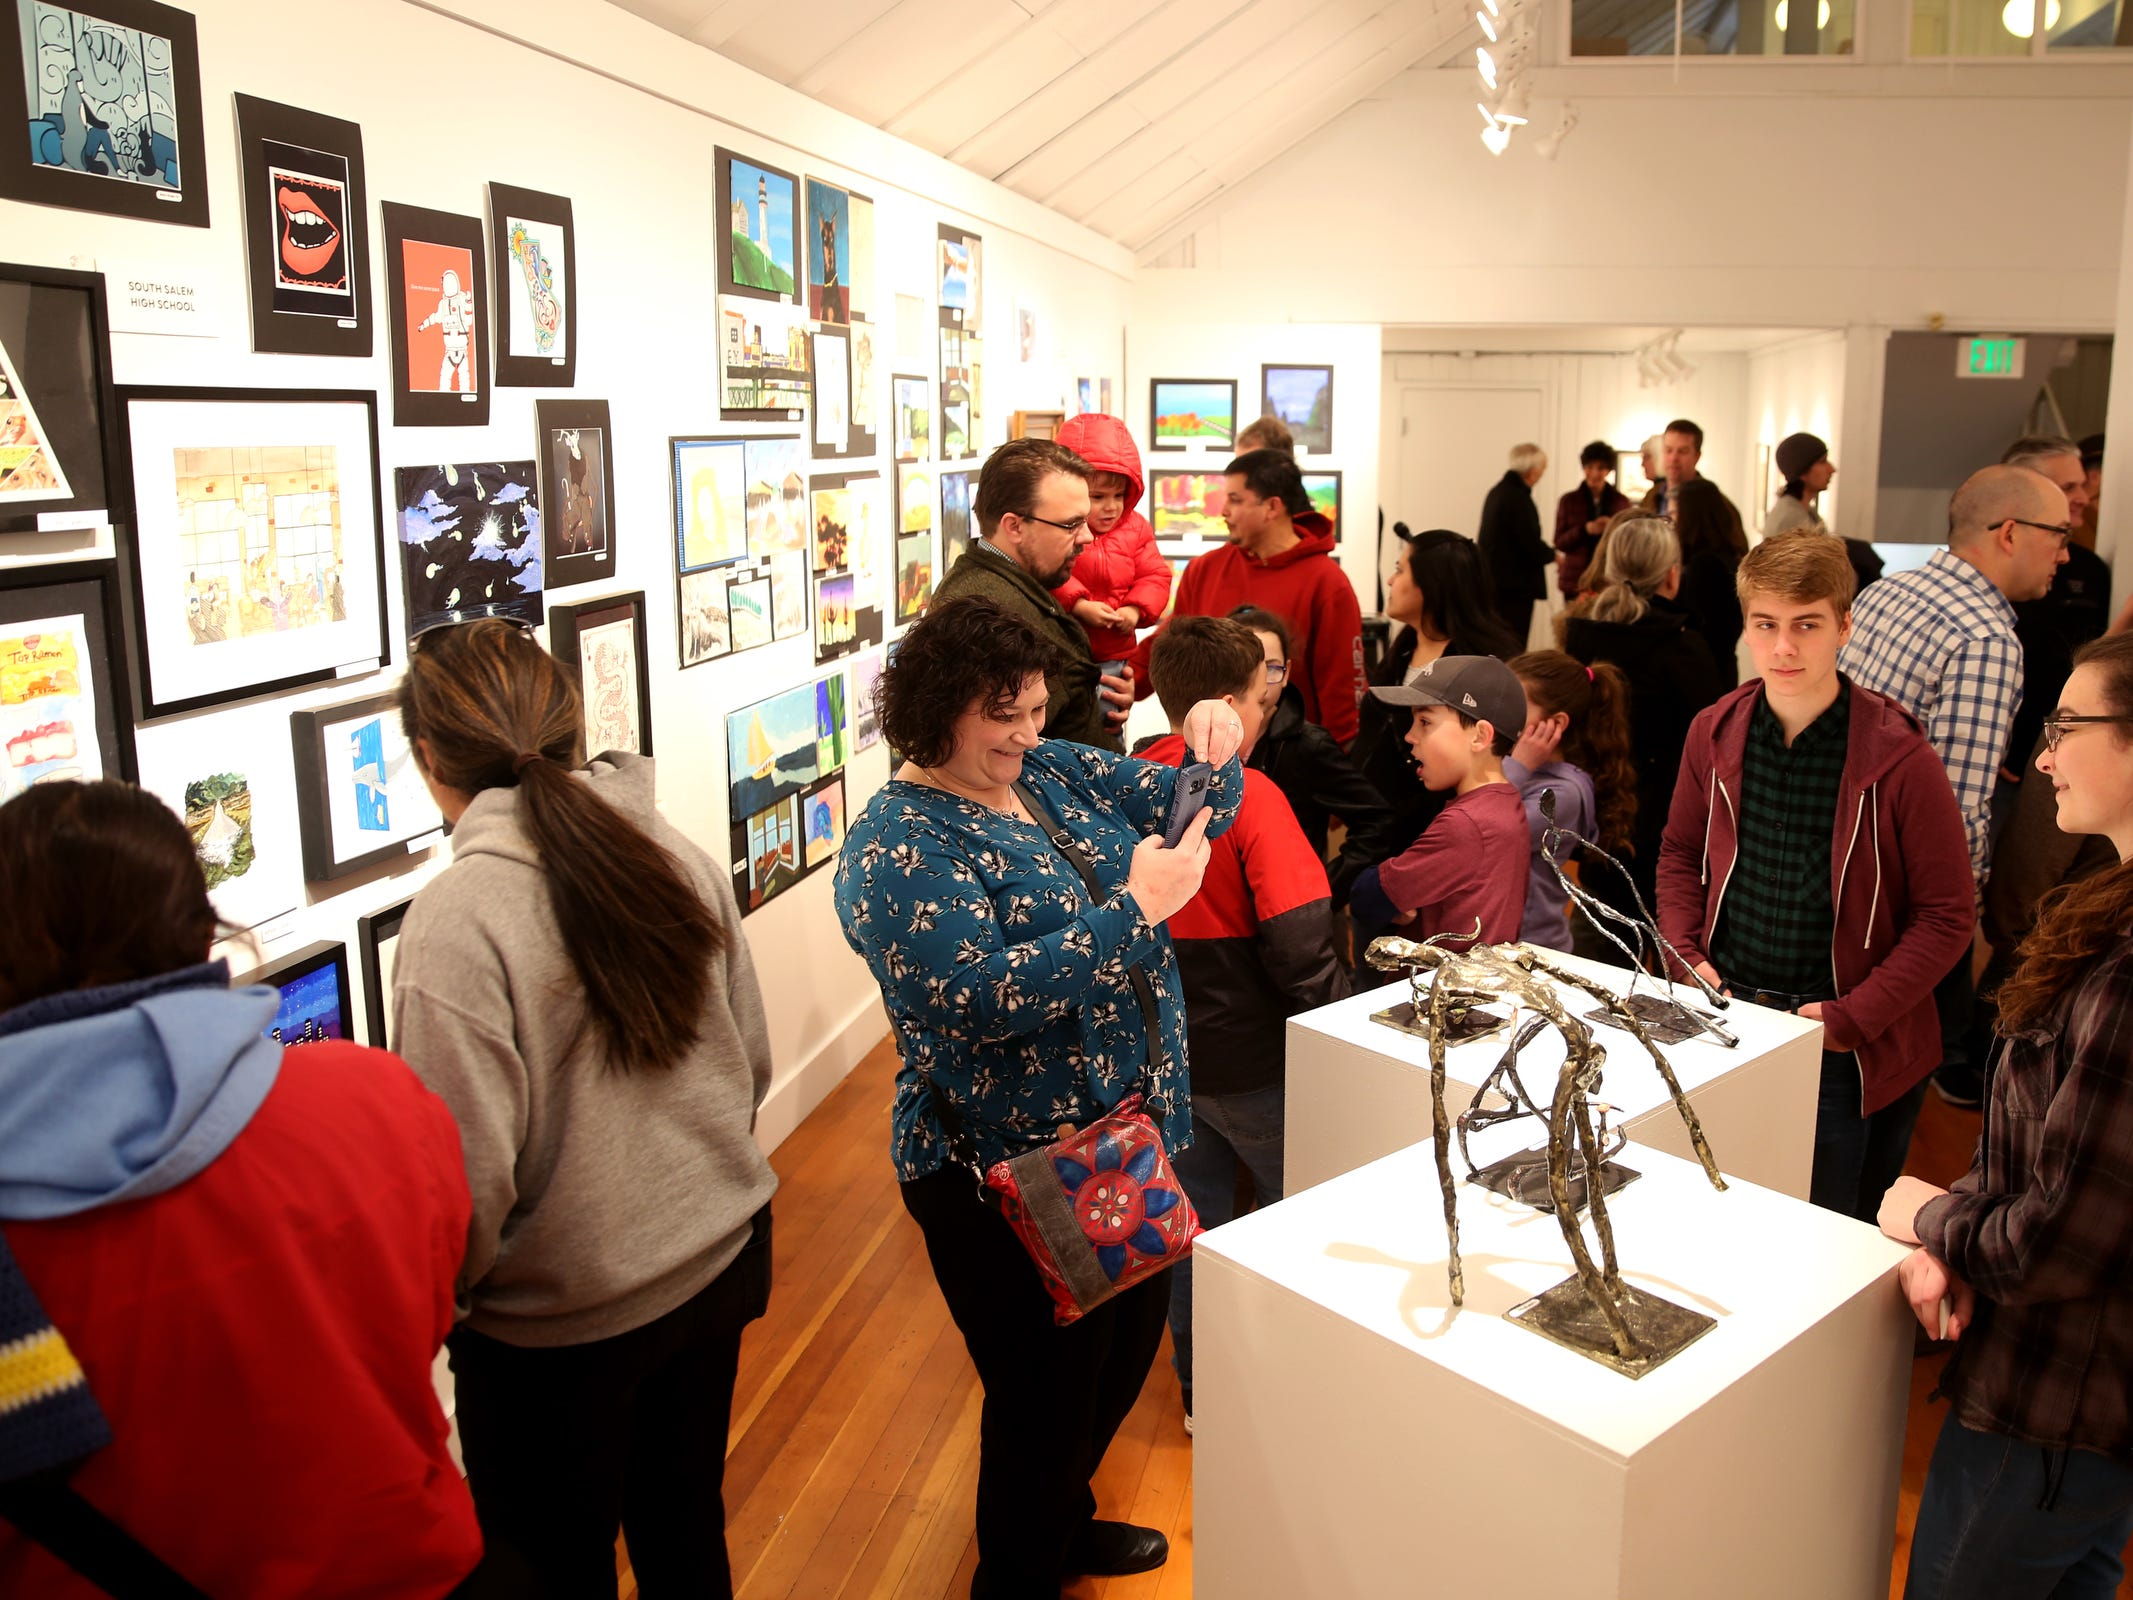 The awards reception for the 10th annual Young Artists' Showcase at the Bush Barn Art Center in Salem on March 9, 2019. The exhibit features artwork by more than 400 students in Marion, Polk and Yamhill counties and runs through April 20.